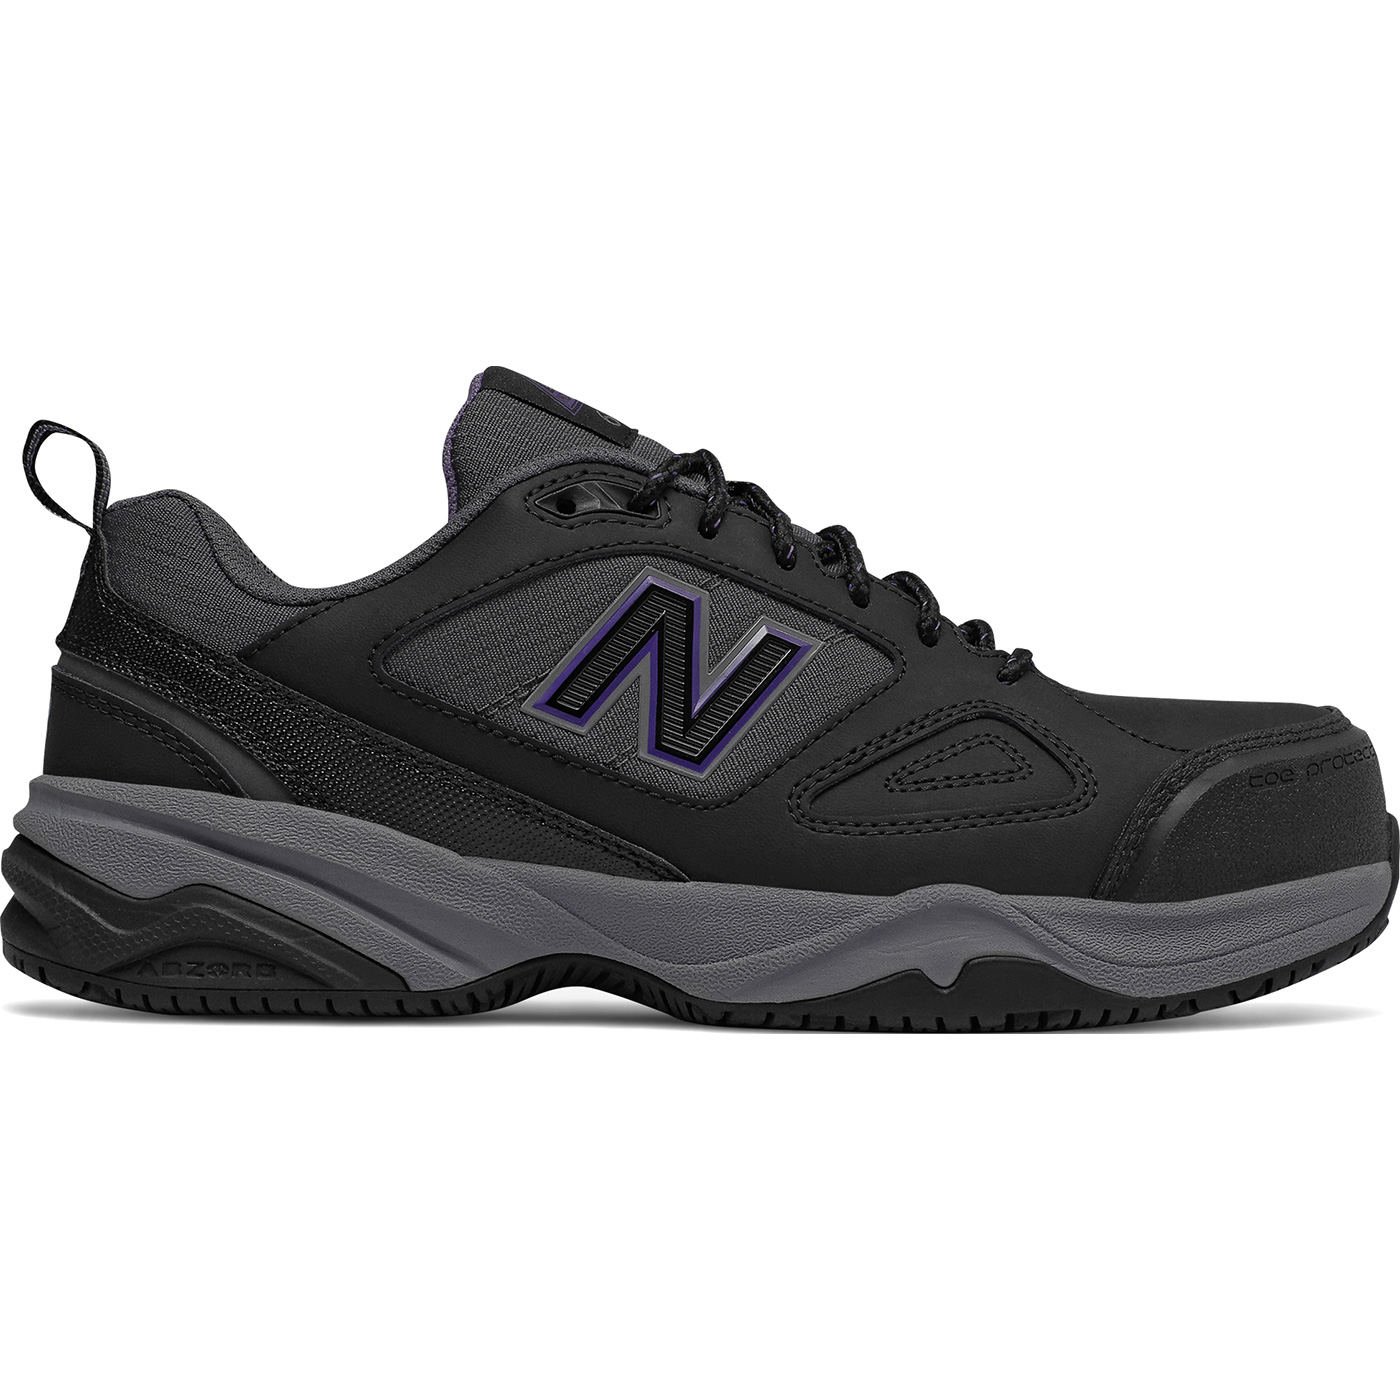 50e6656481 New Balance 627v2 Women's Steel Toe Slip Resistant Static Dissipative  Athletic Work Shoes